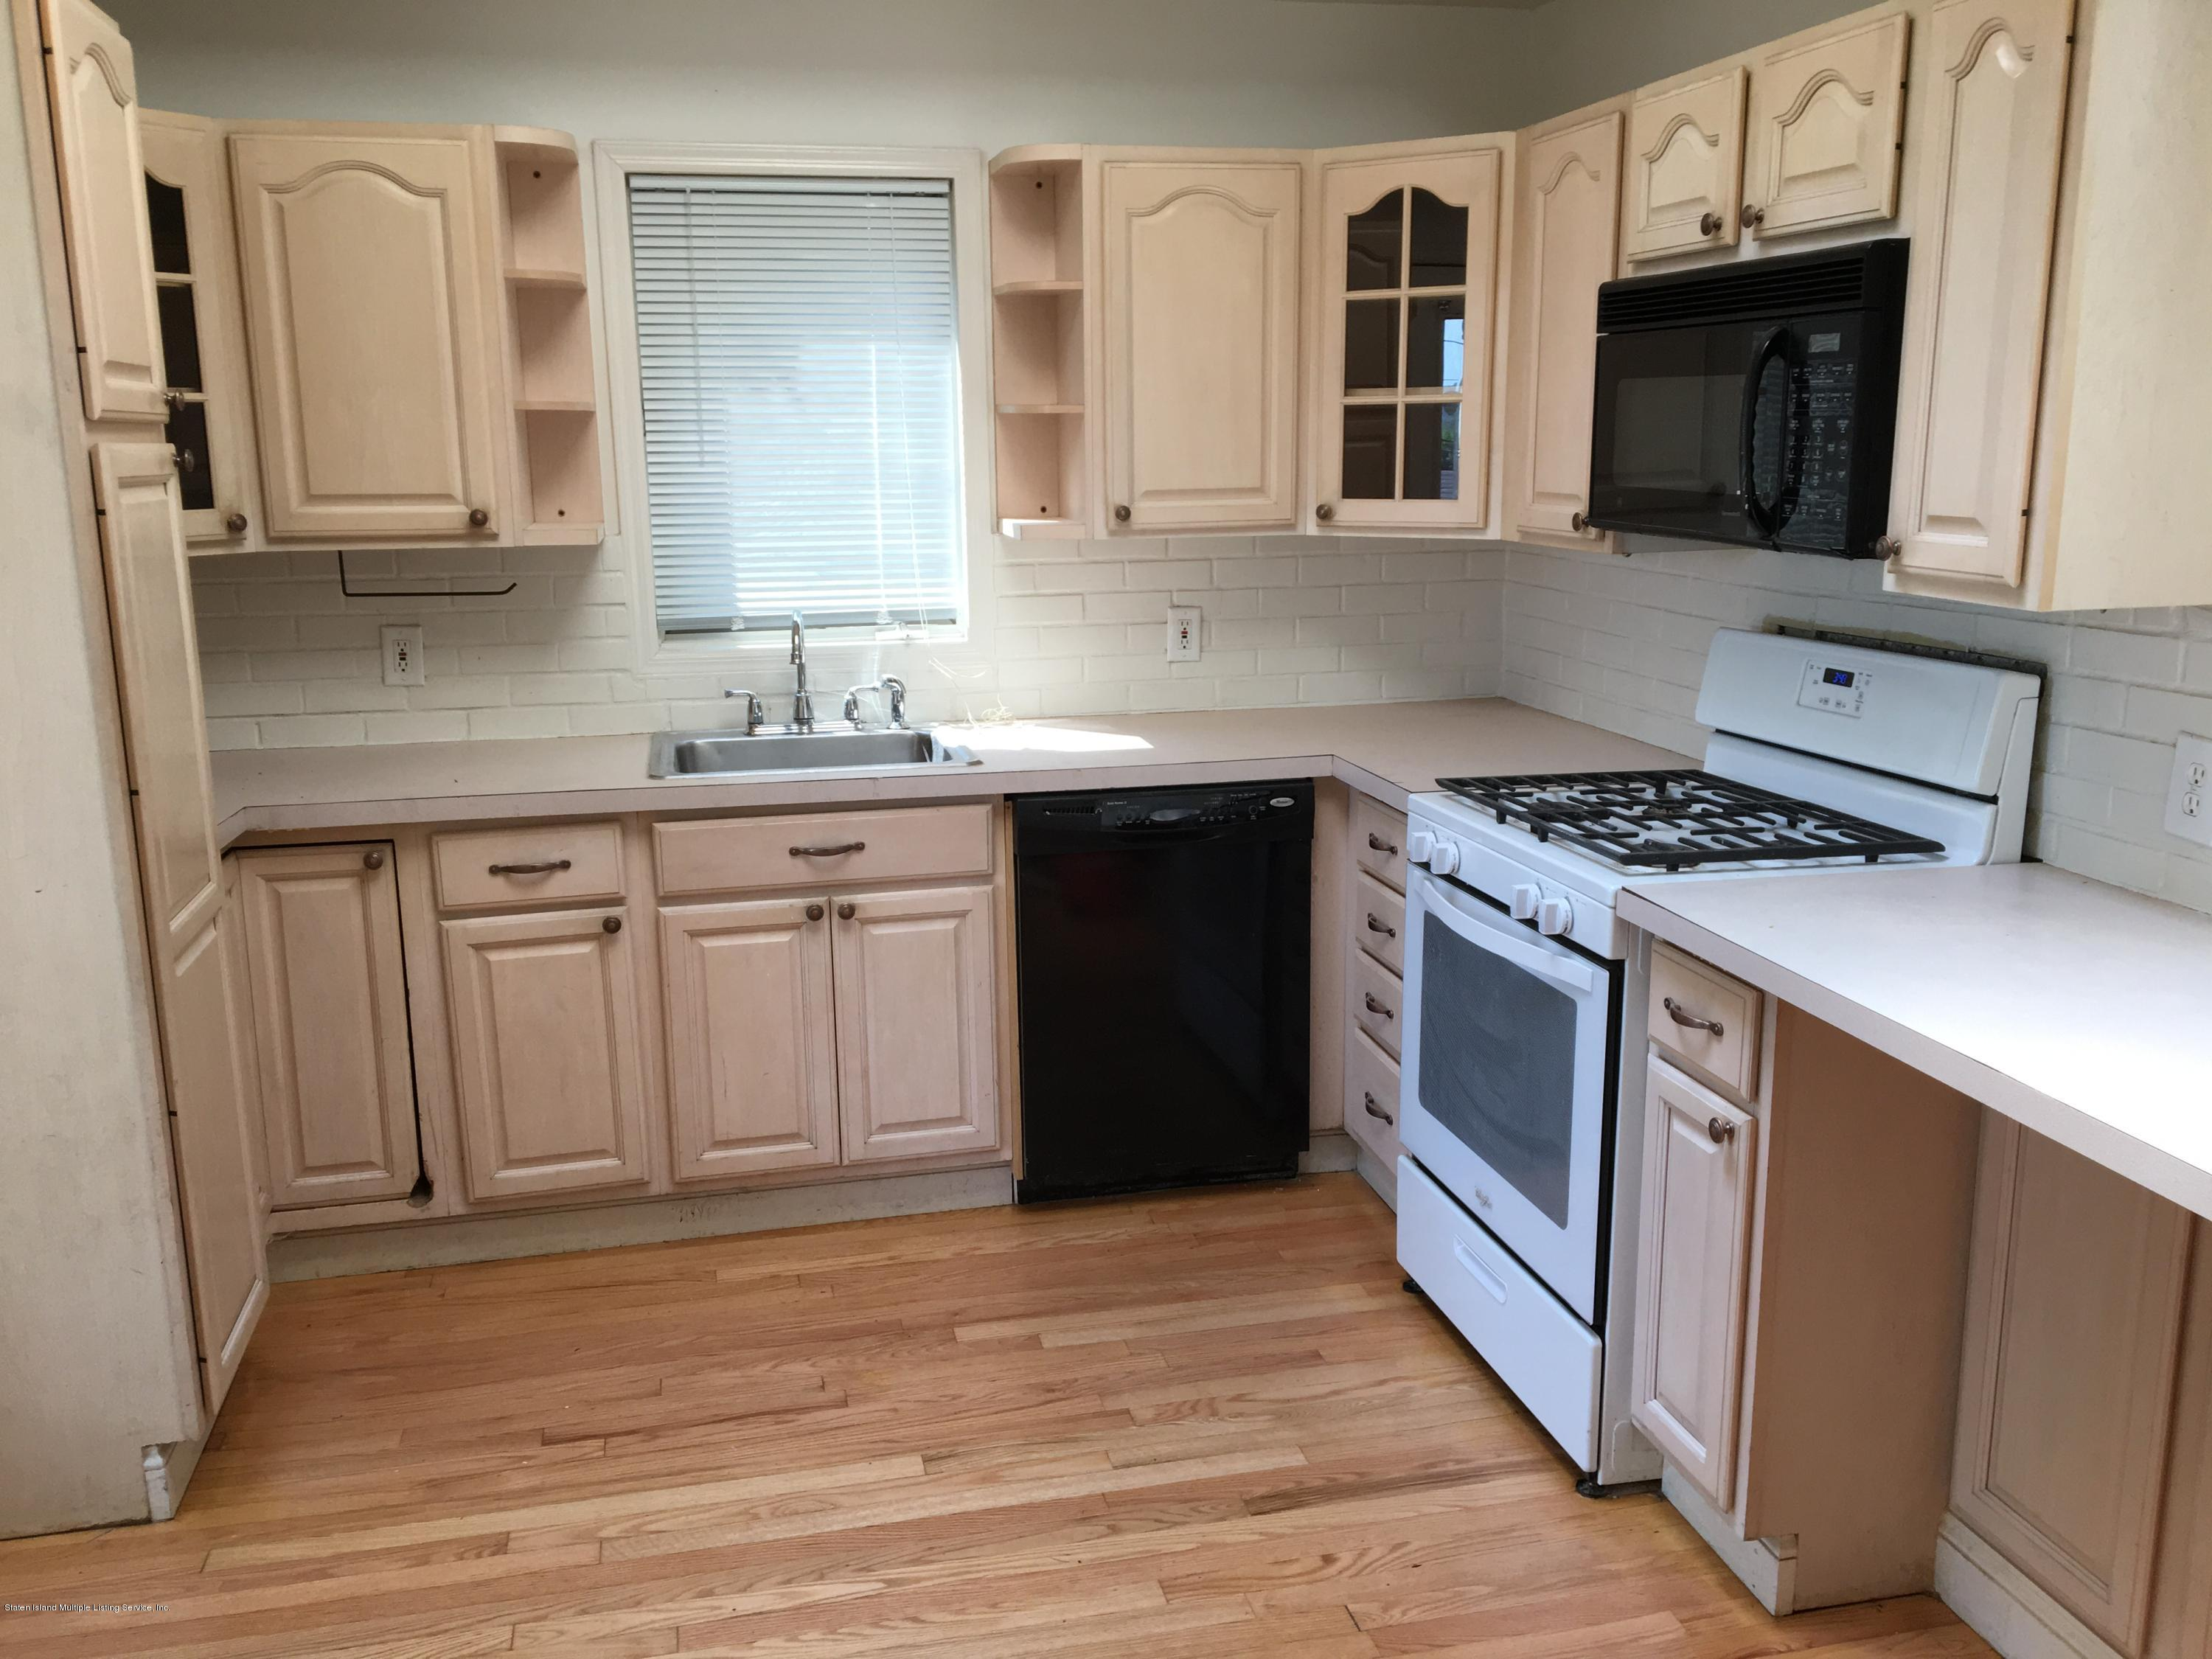 Single Family - Detached 35 Cunard Place 1 & 2  Staten Island, NY 10304, MLS-1112815-7